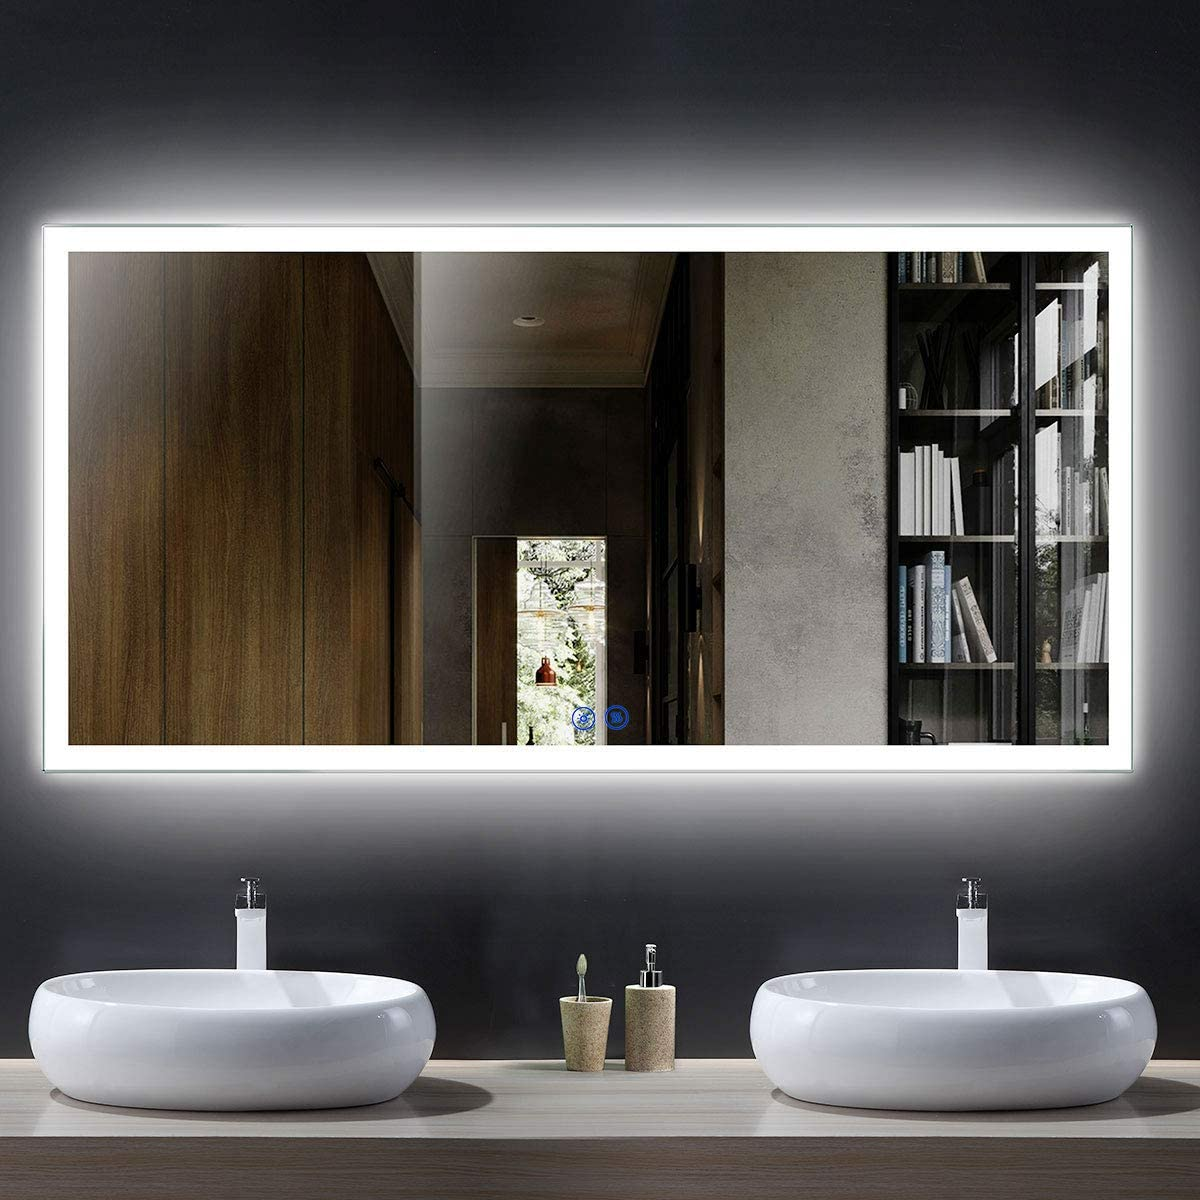 Horizontal Rectangle Large Mirror Bathroom Wall-Mounted Mirror with Touch Button Dress Mirror 55 x 28 Inch D-N031-D